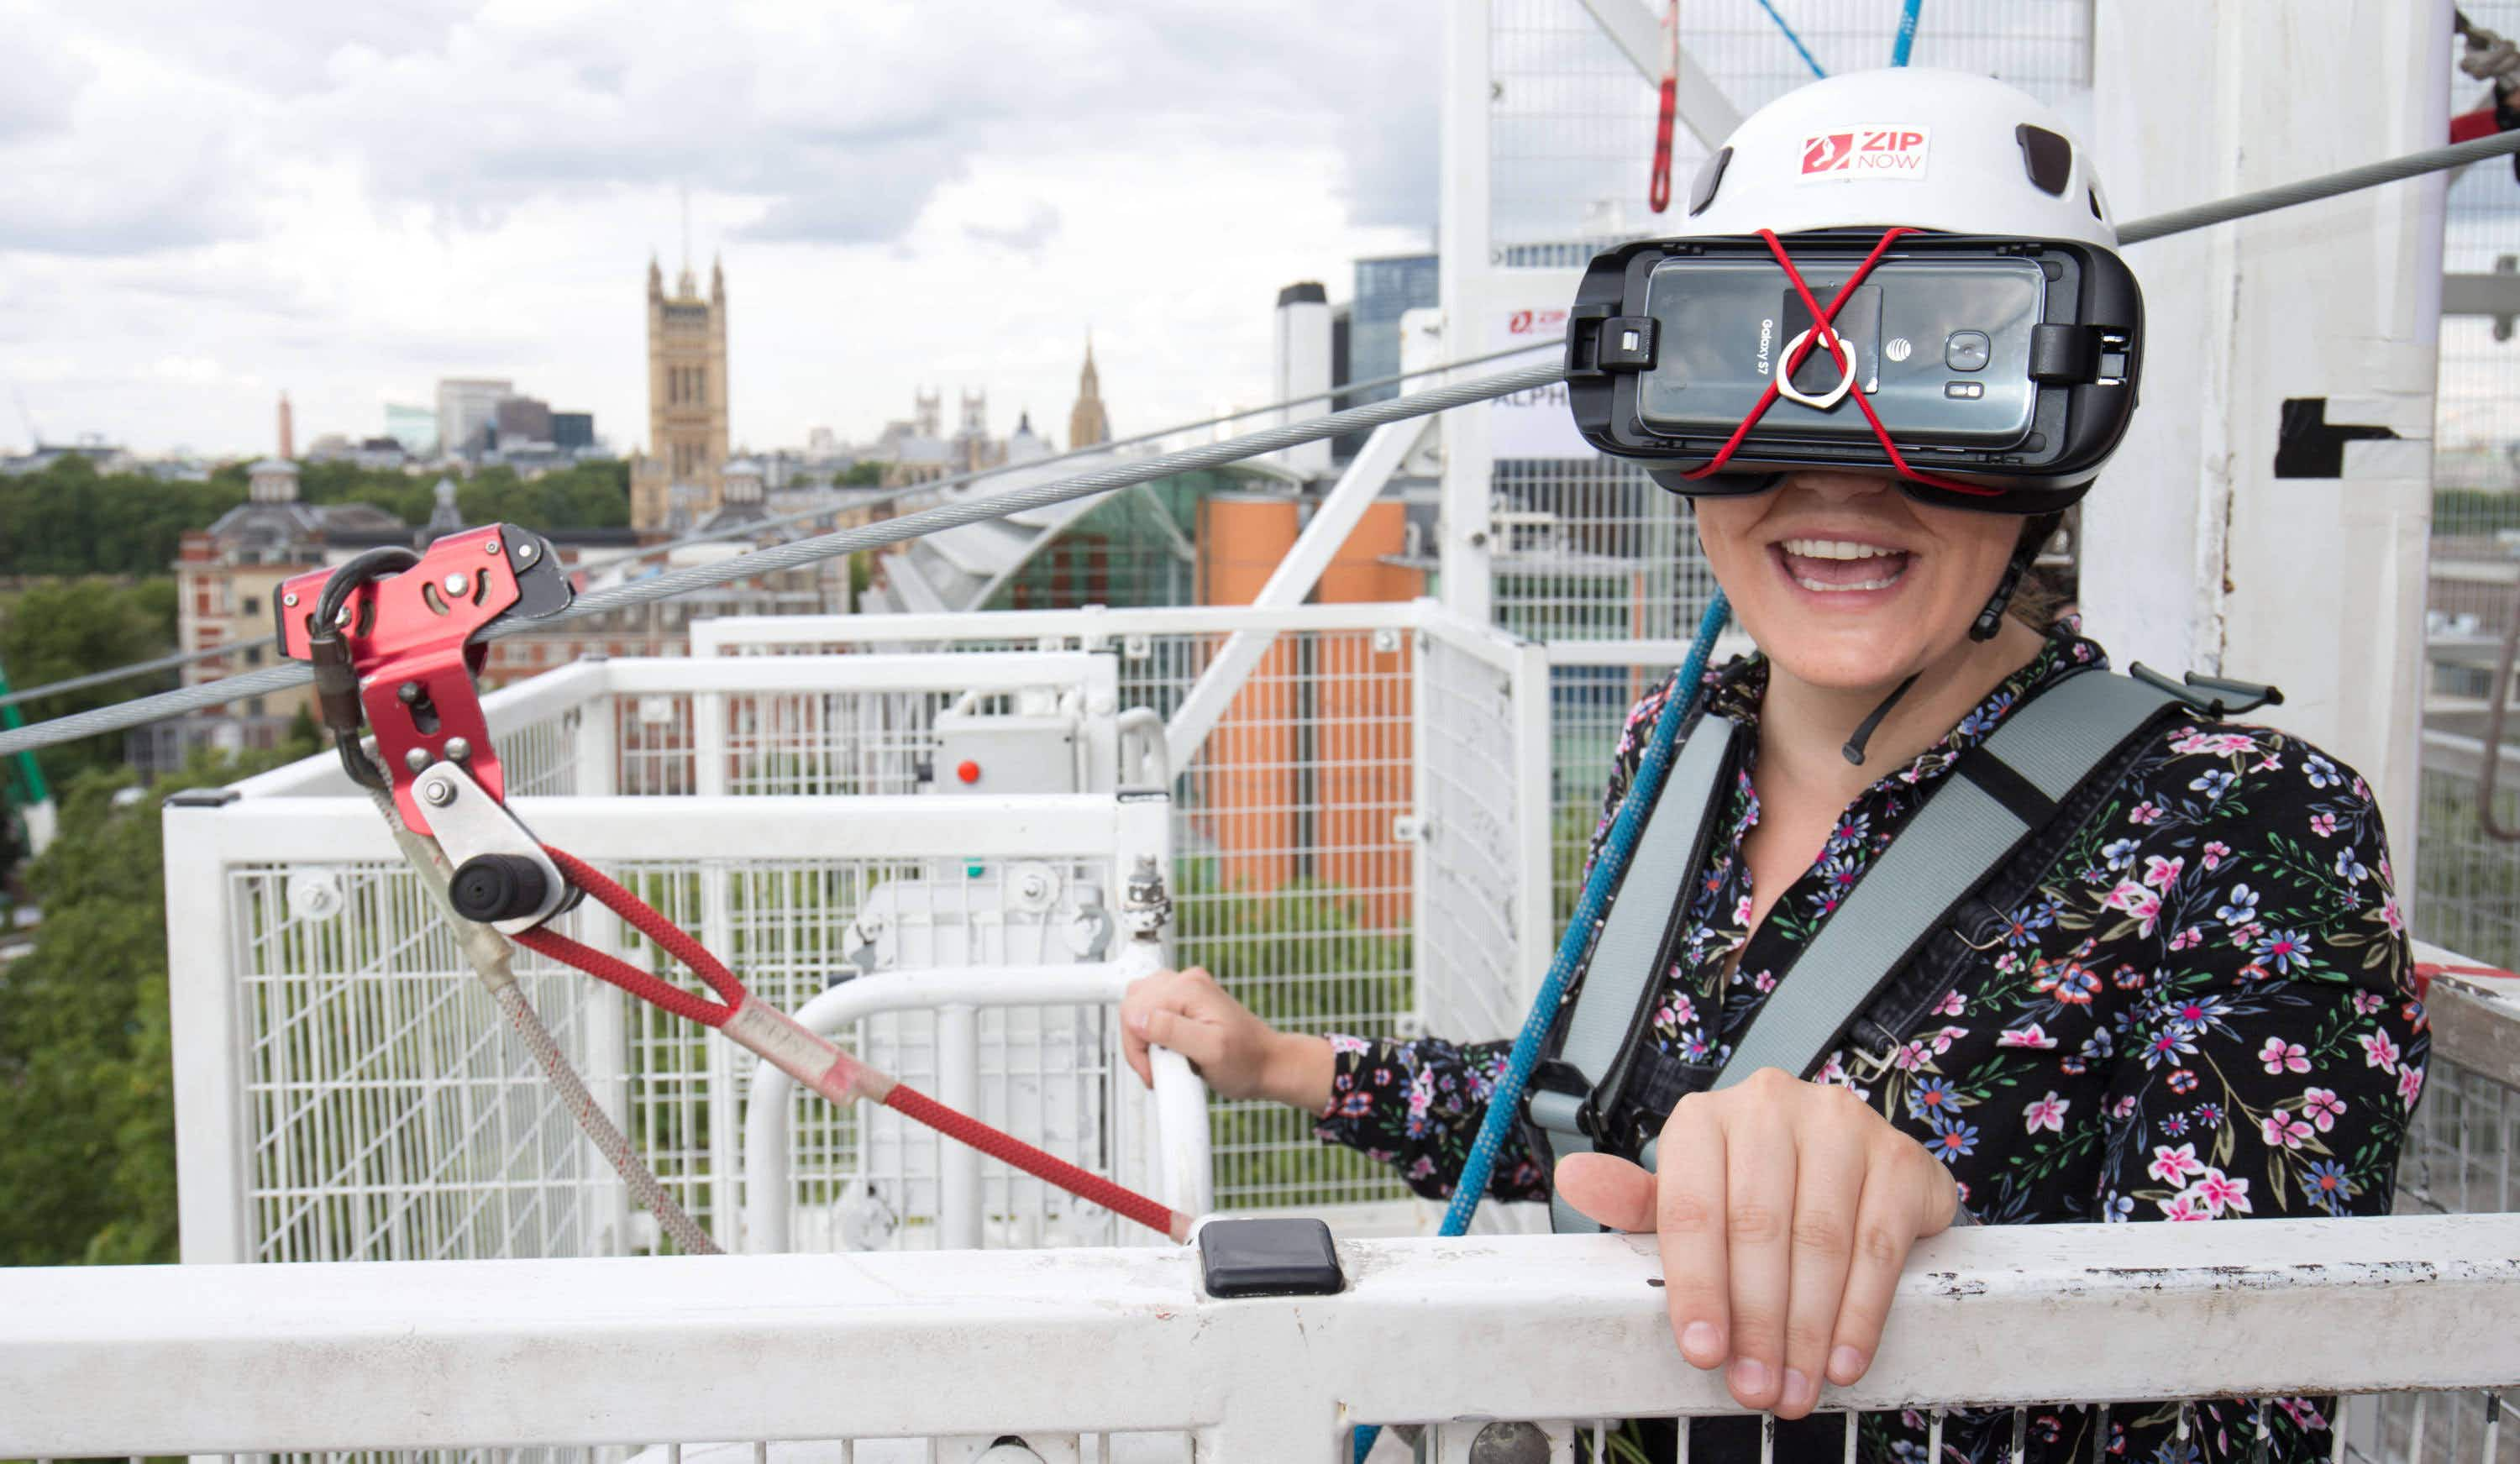 Take a virtual ride on the UAE's record-breaking zipline in the middle of London